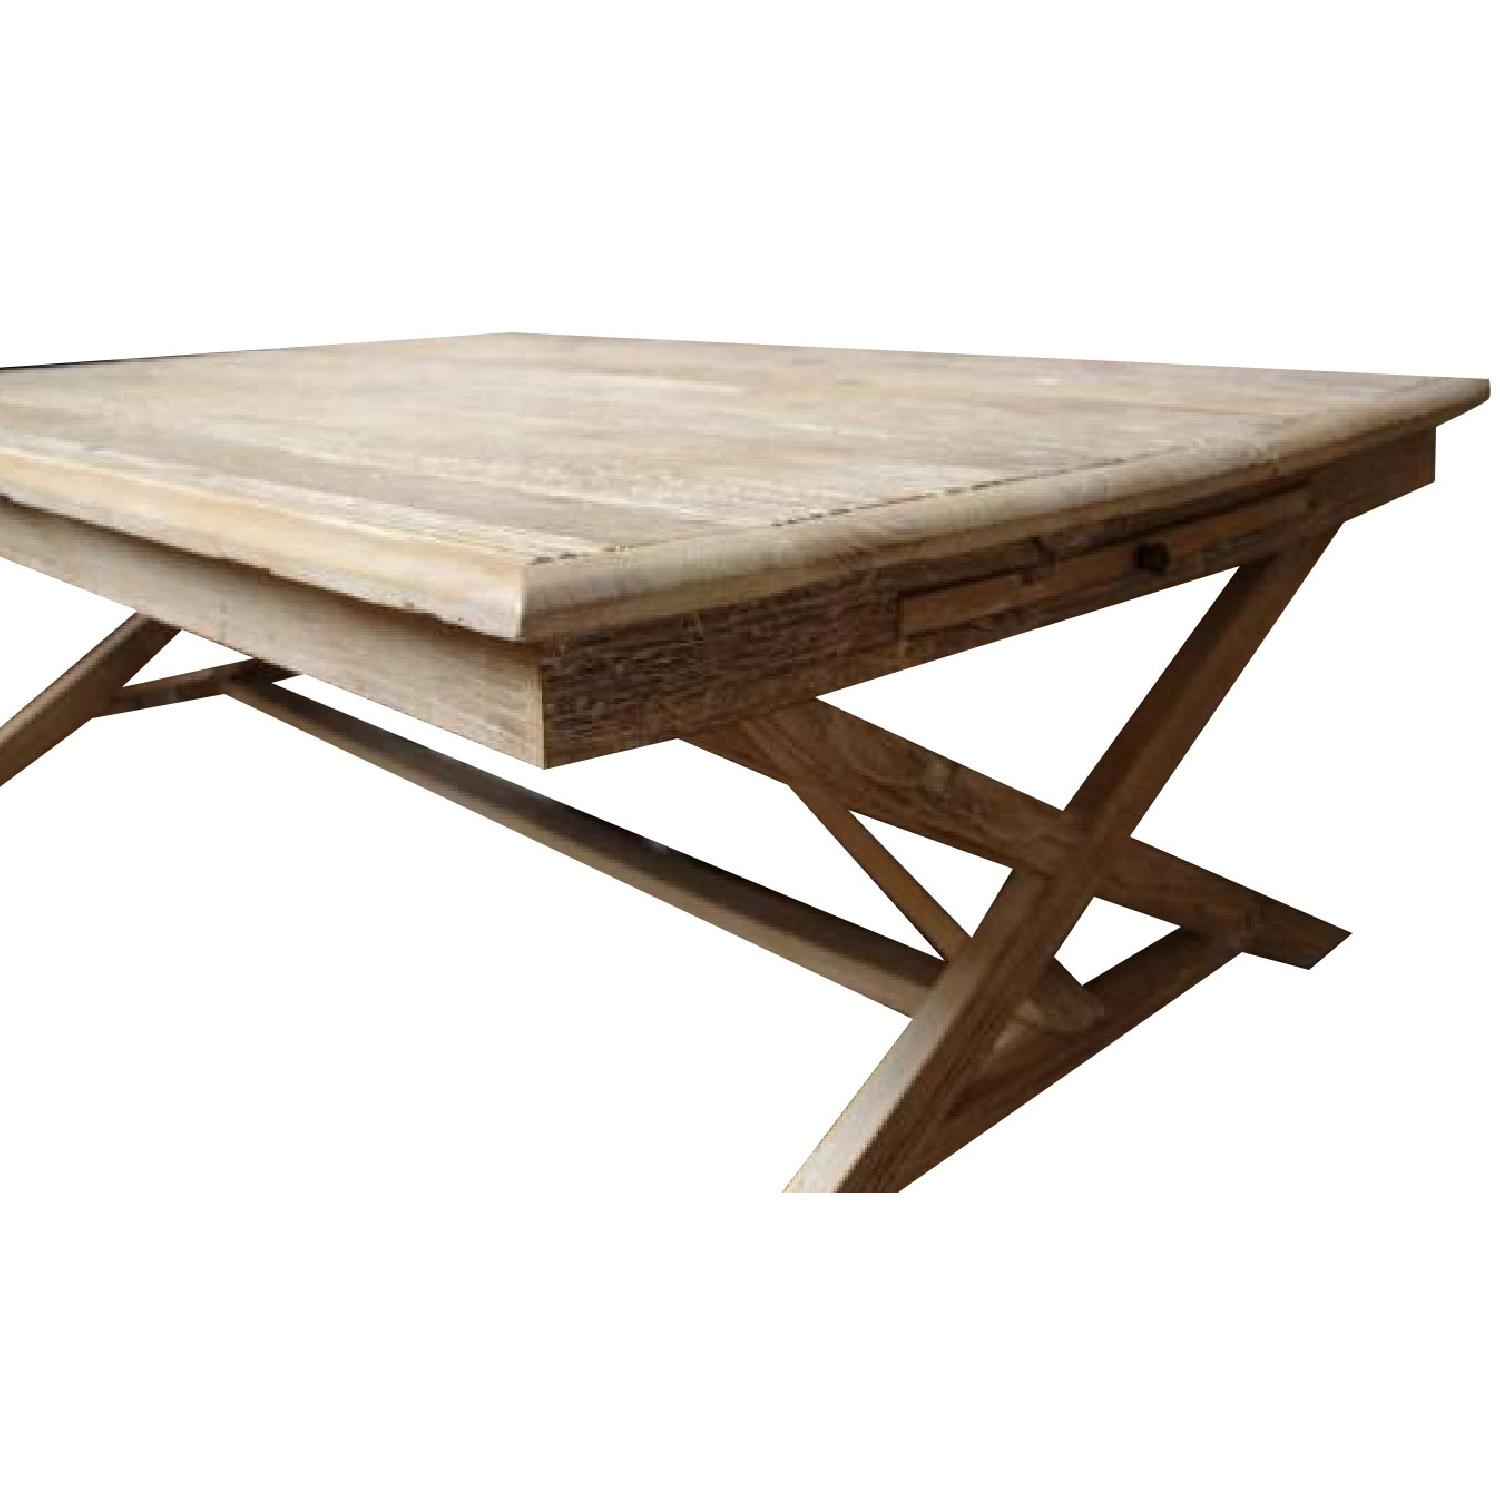 ABC Carpet & Home Handcrafted Coffee Table - image-0